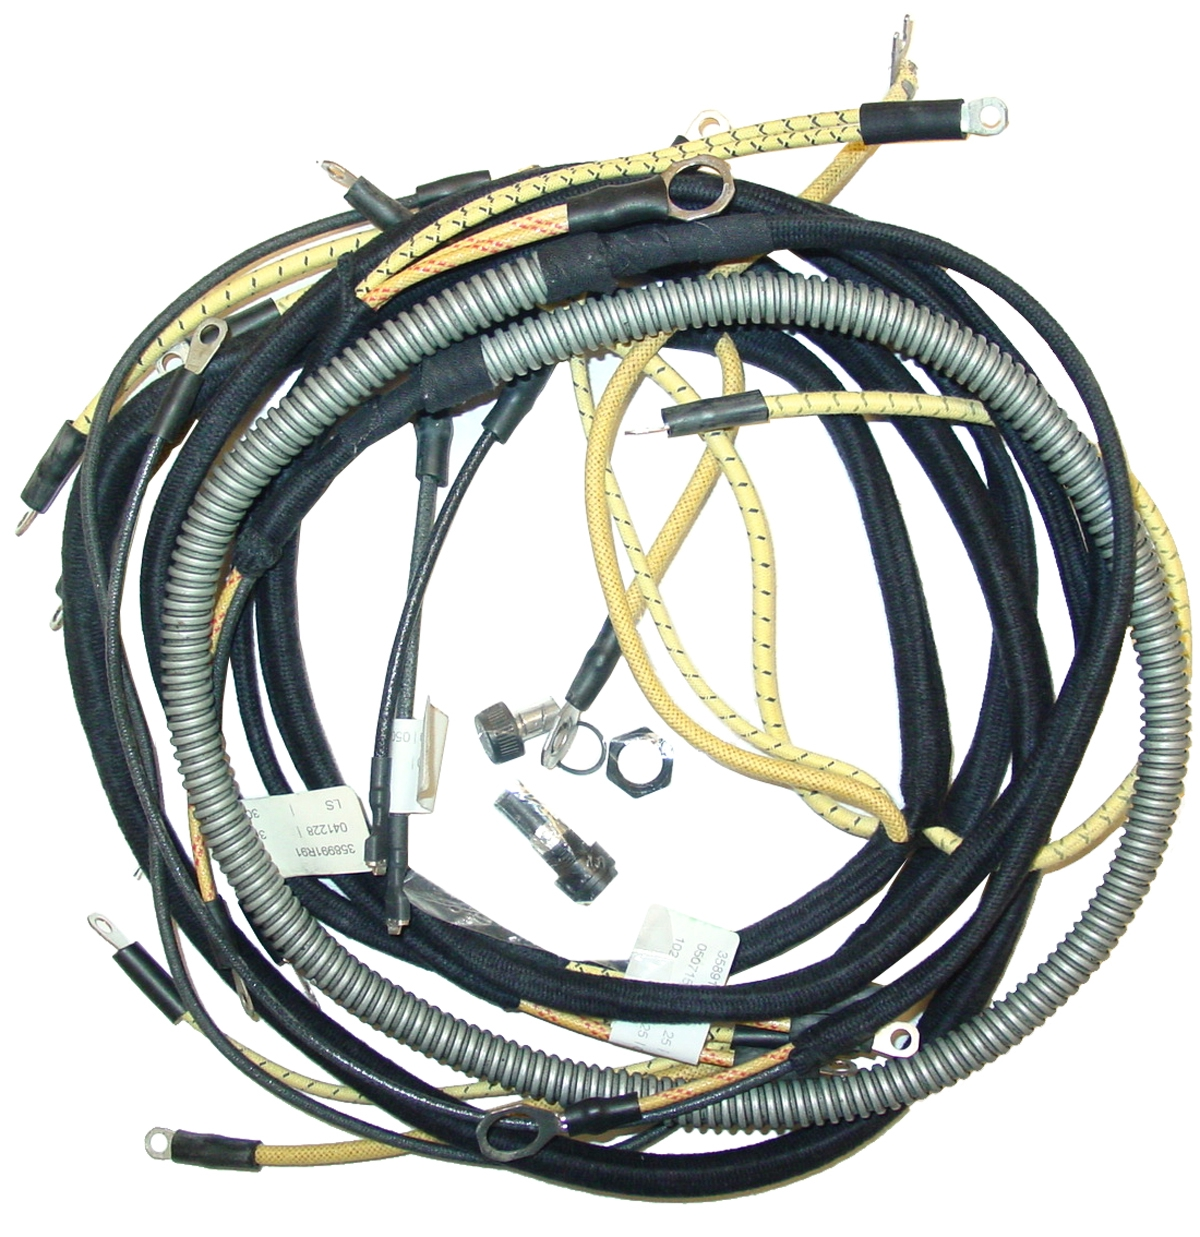 hight resolution of wiring harness case ih parts case ih tractor parts wiring harness for 574 international tractor wiring harness international tractor